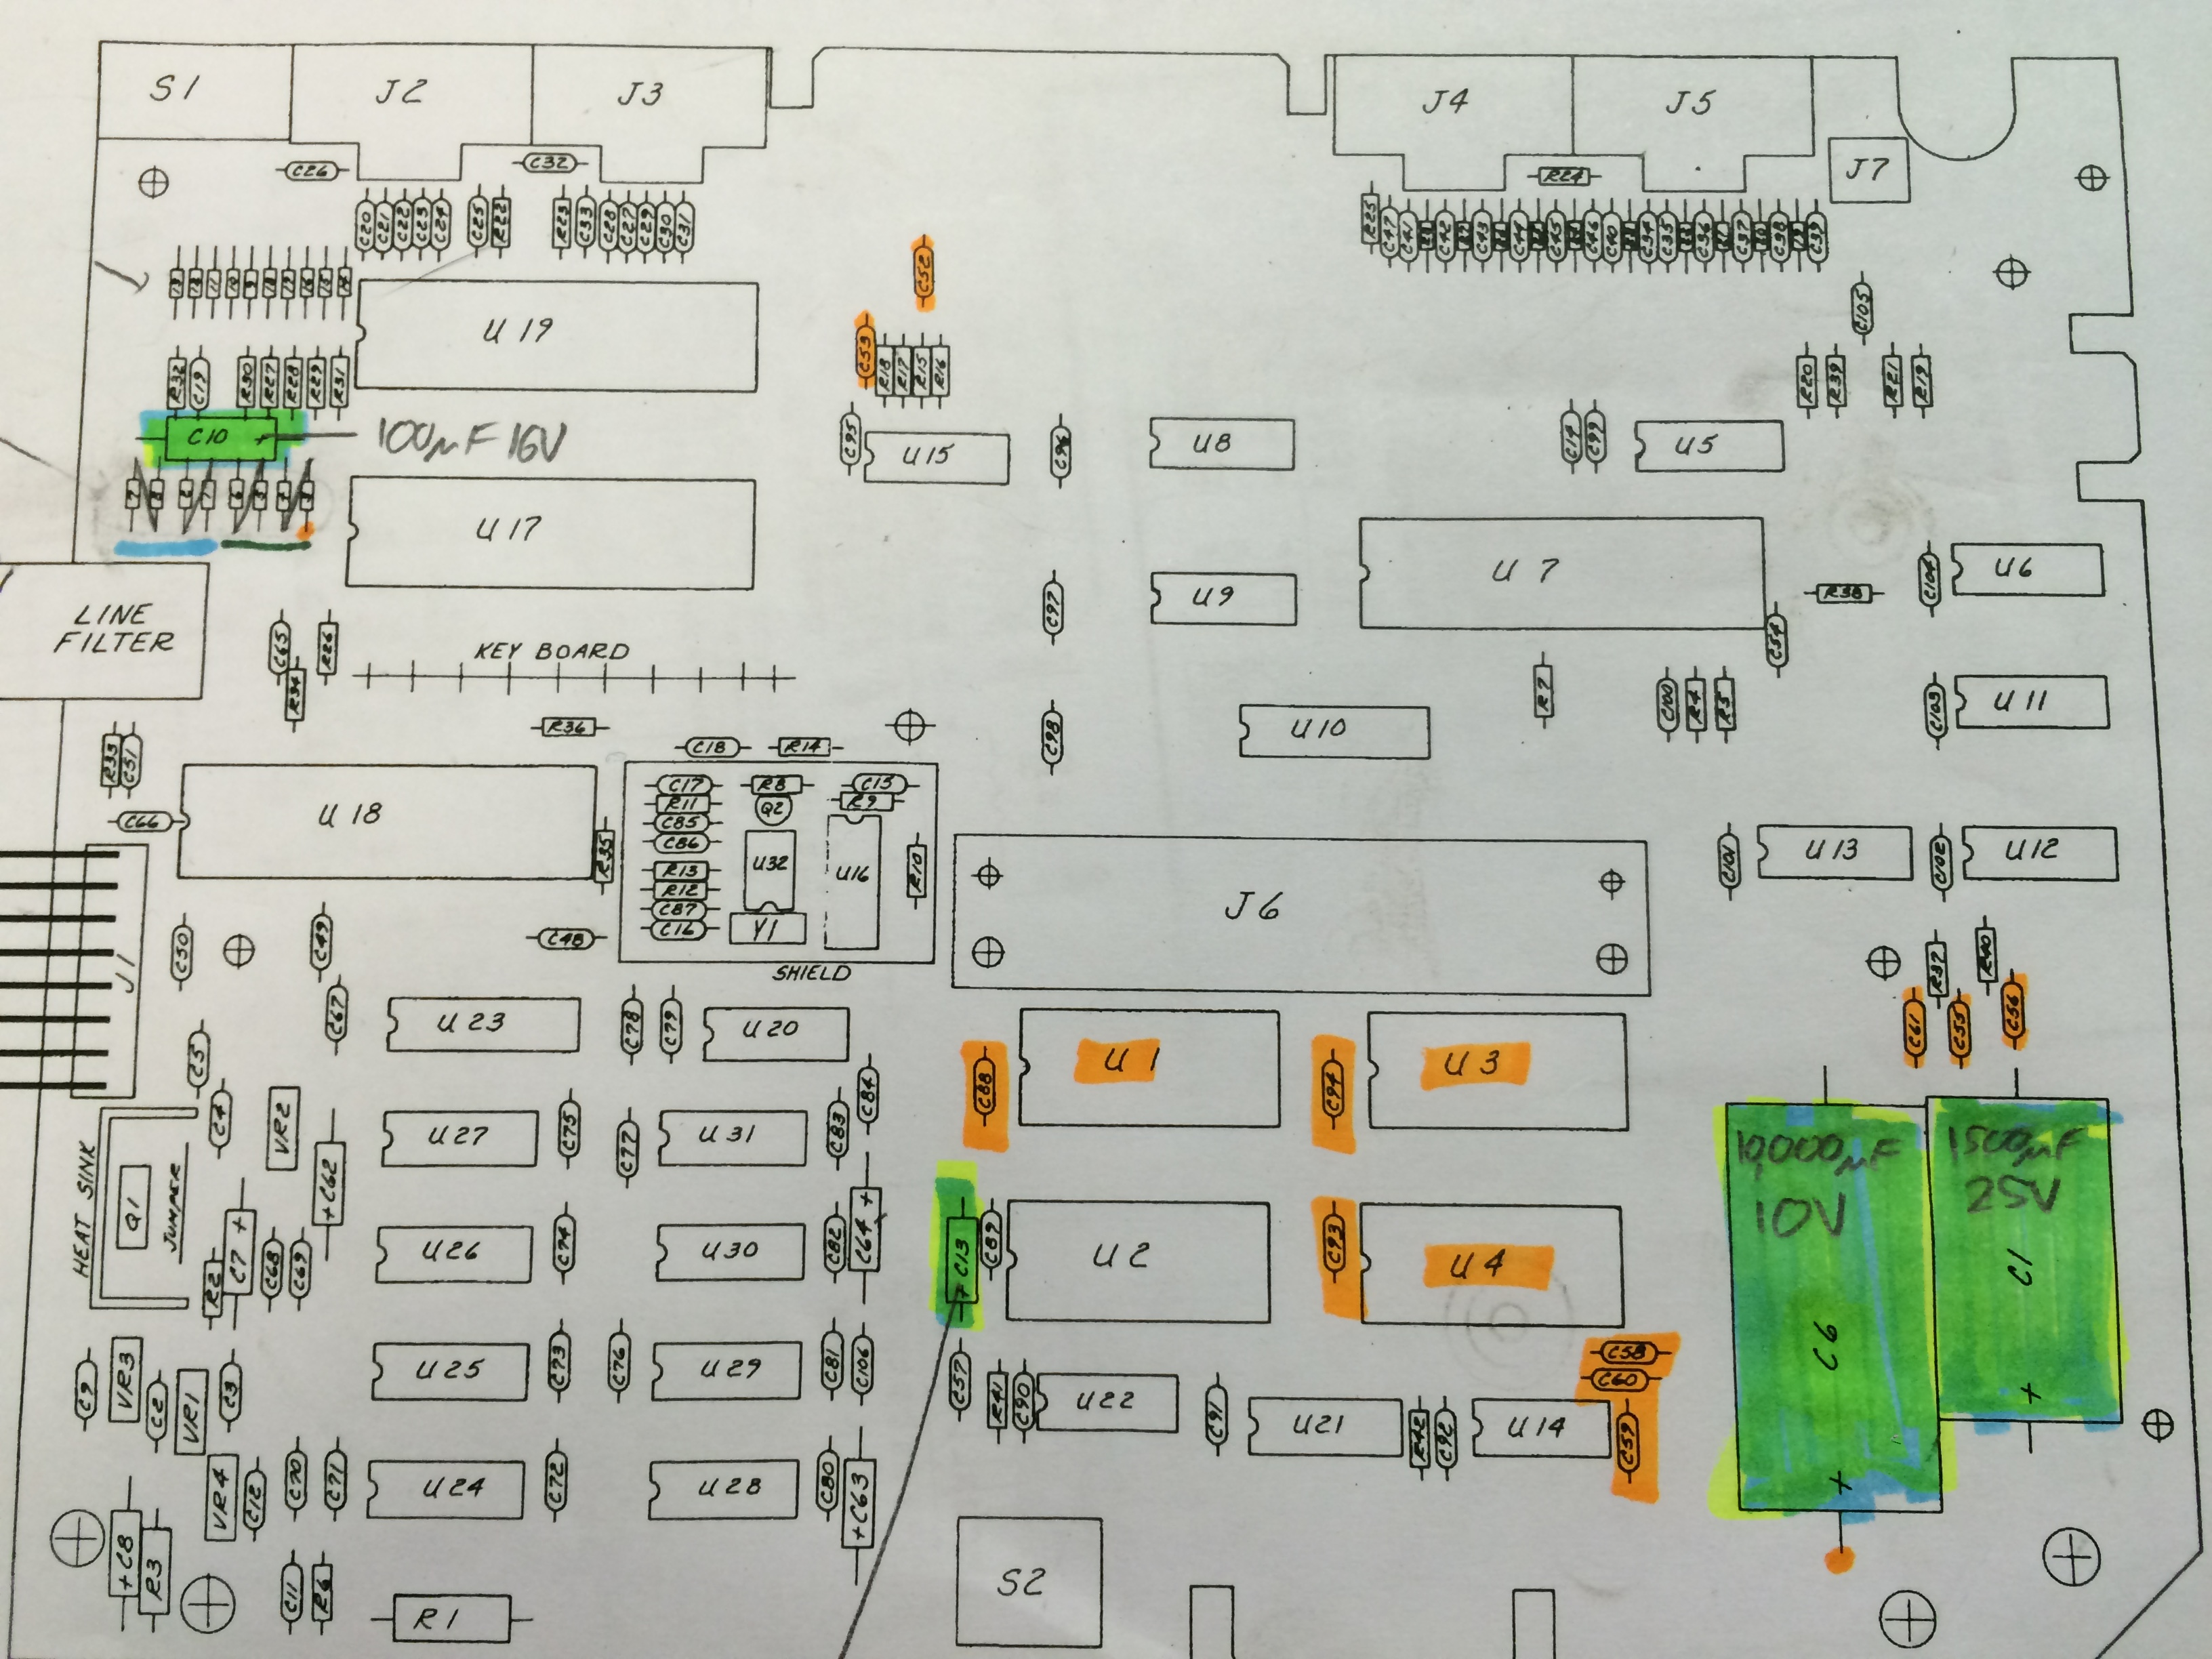 Unit 8161 Wiring Diagram Wiring Outdoor Fuse Box